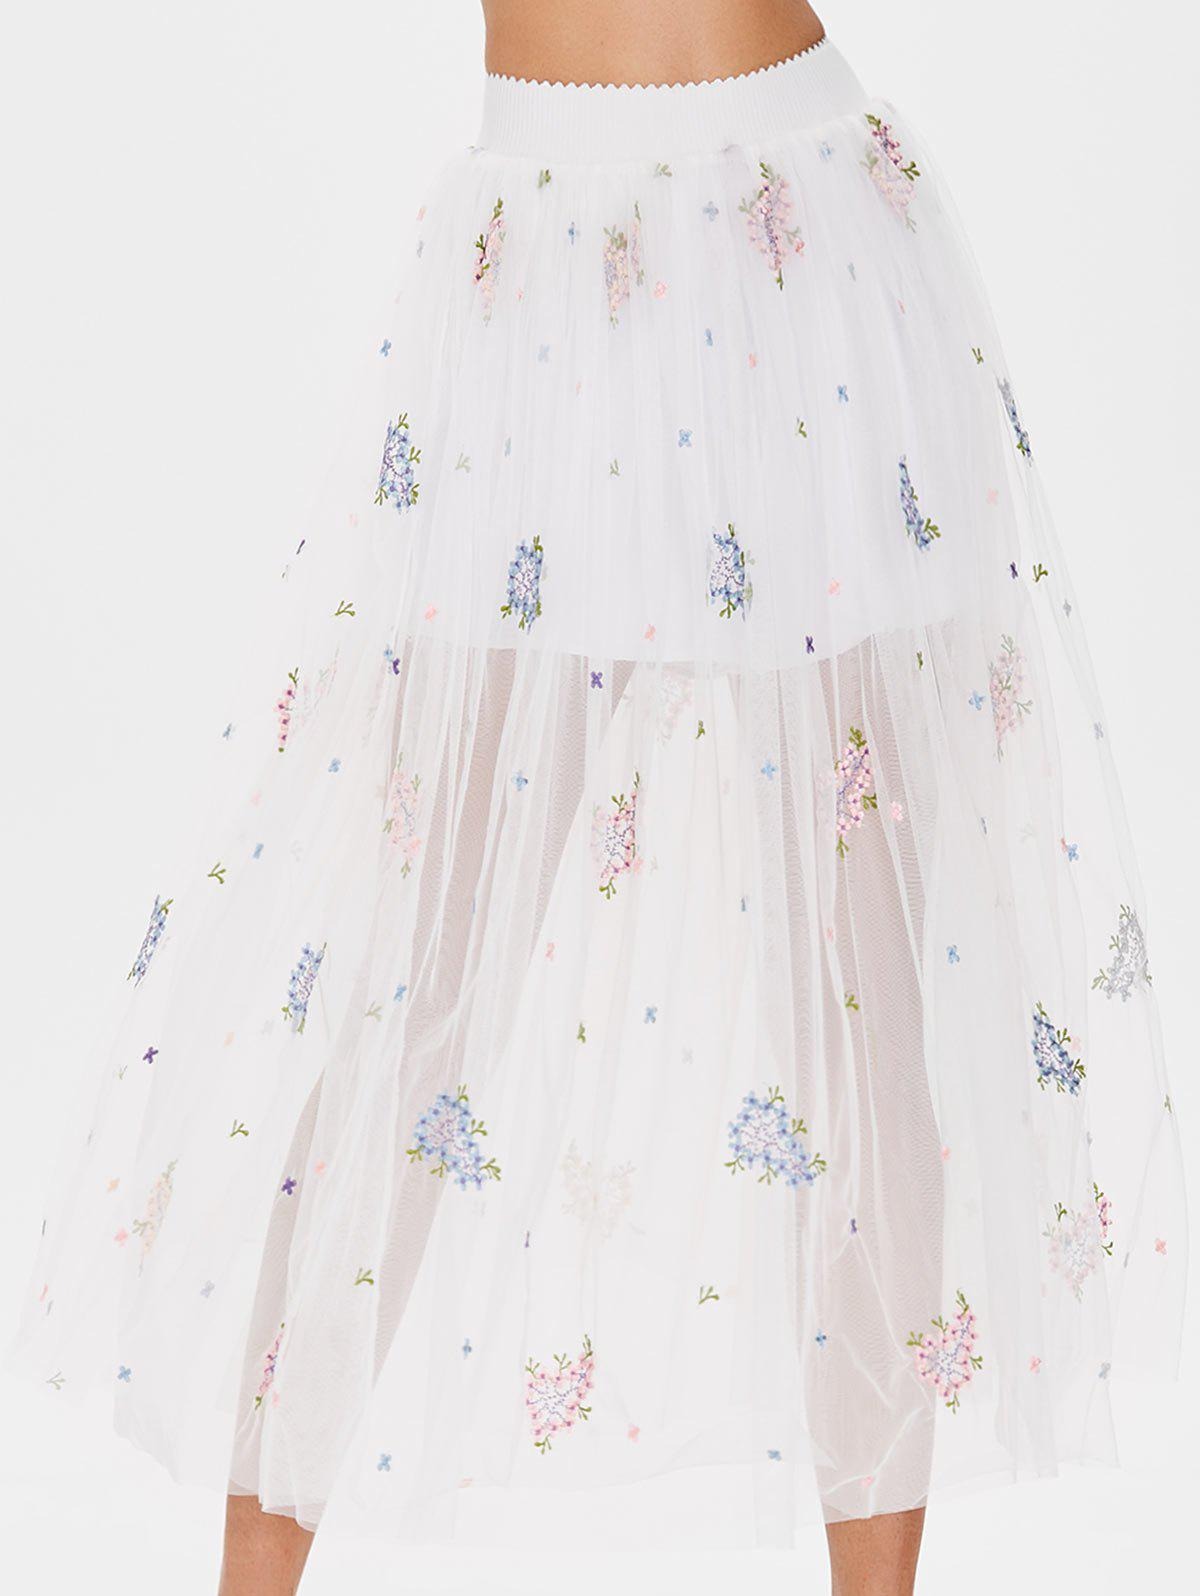 Floral Embroidered Tulle Midi Skirt - MILK WHITE ONE SIZE